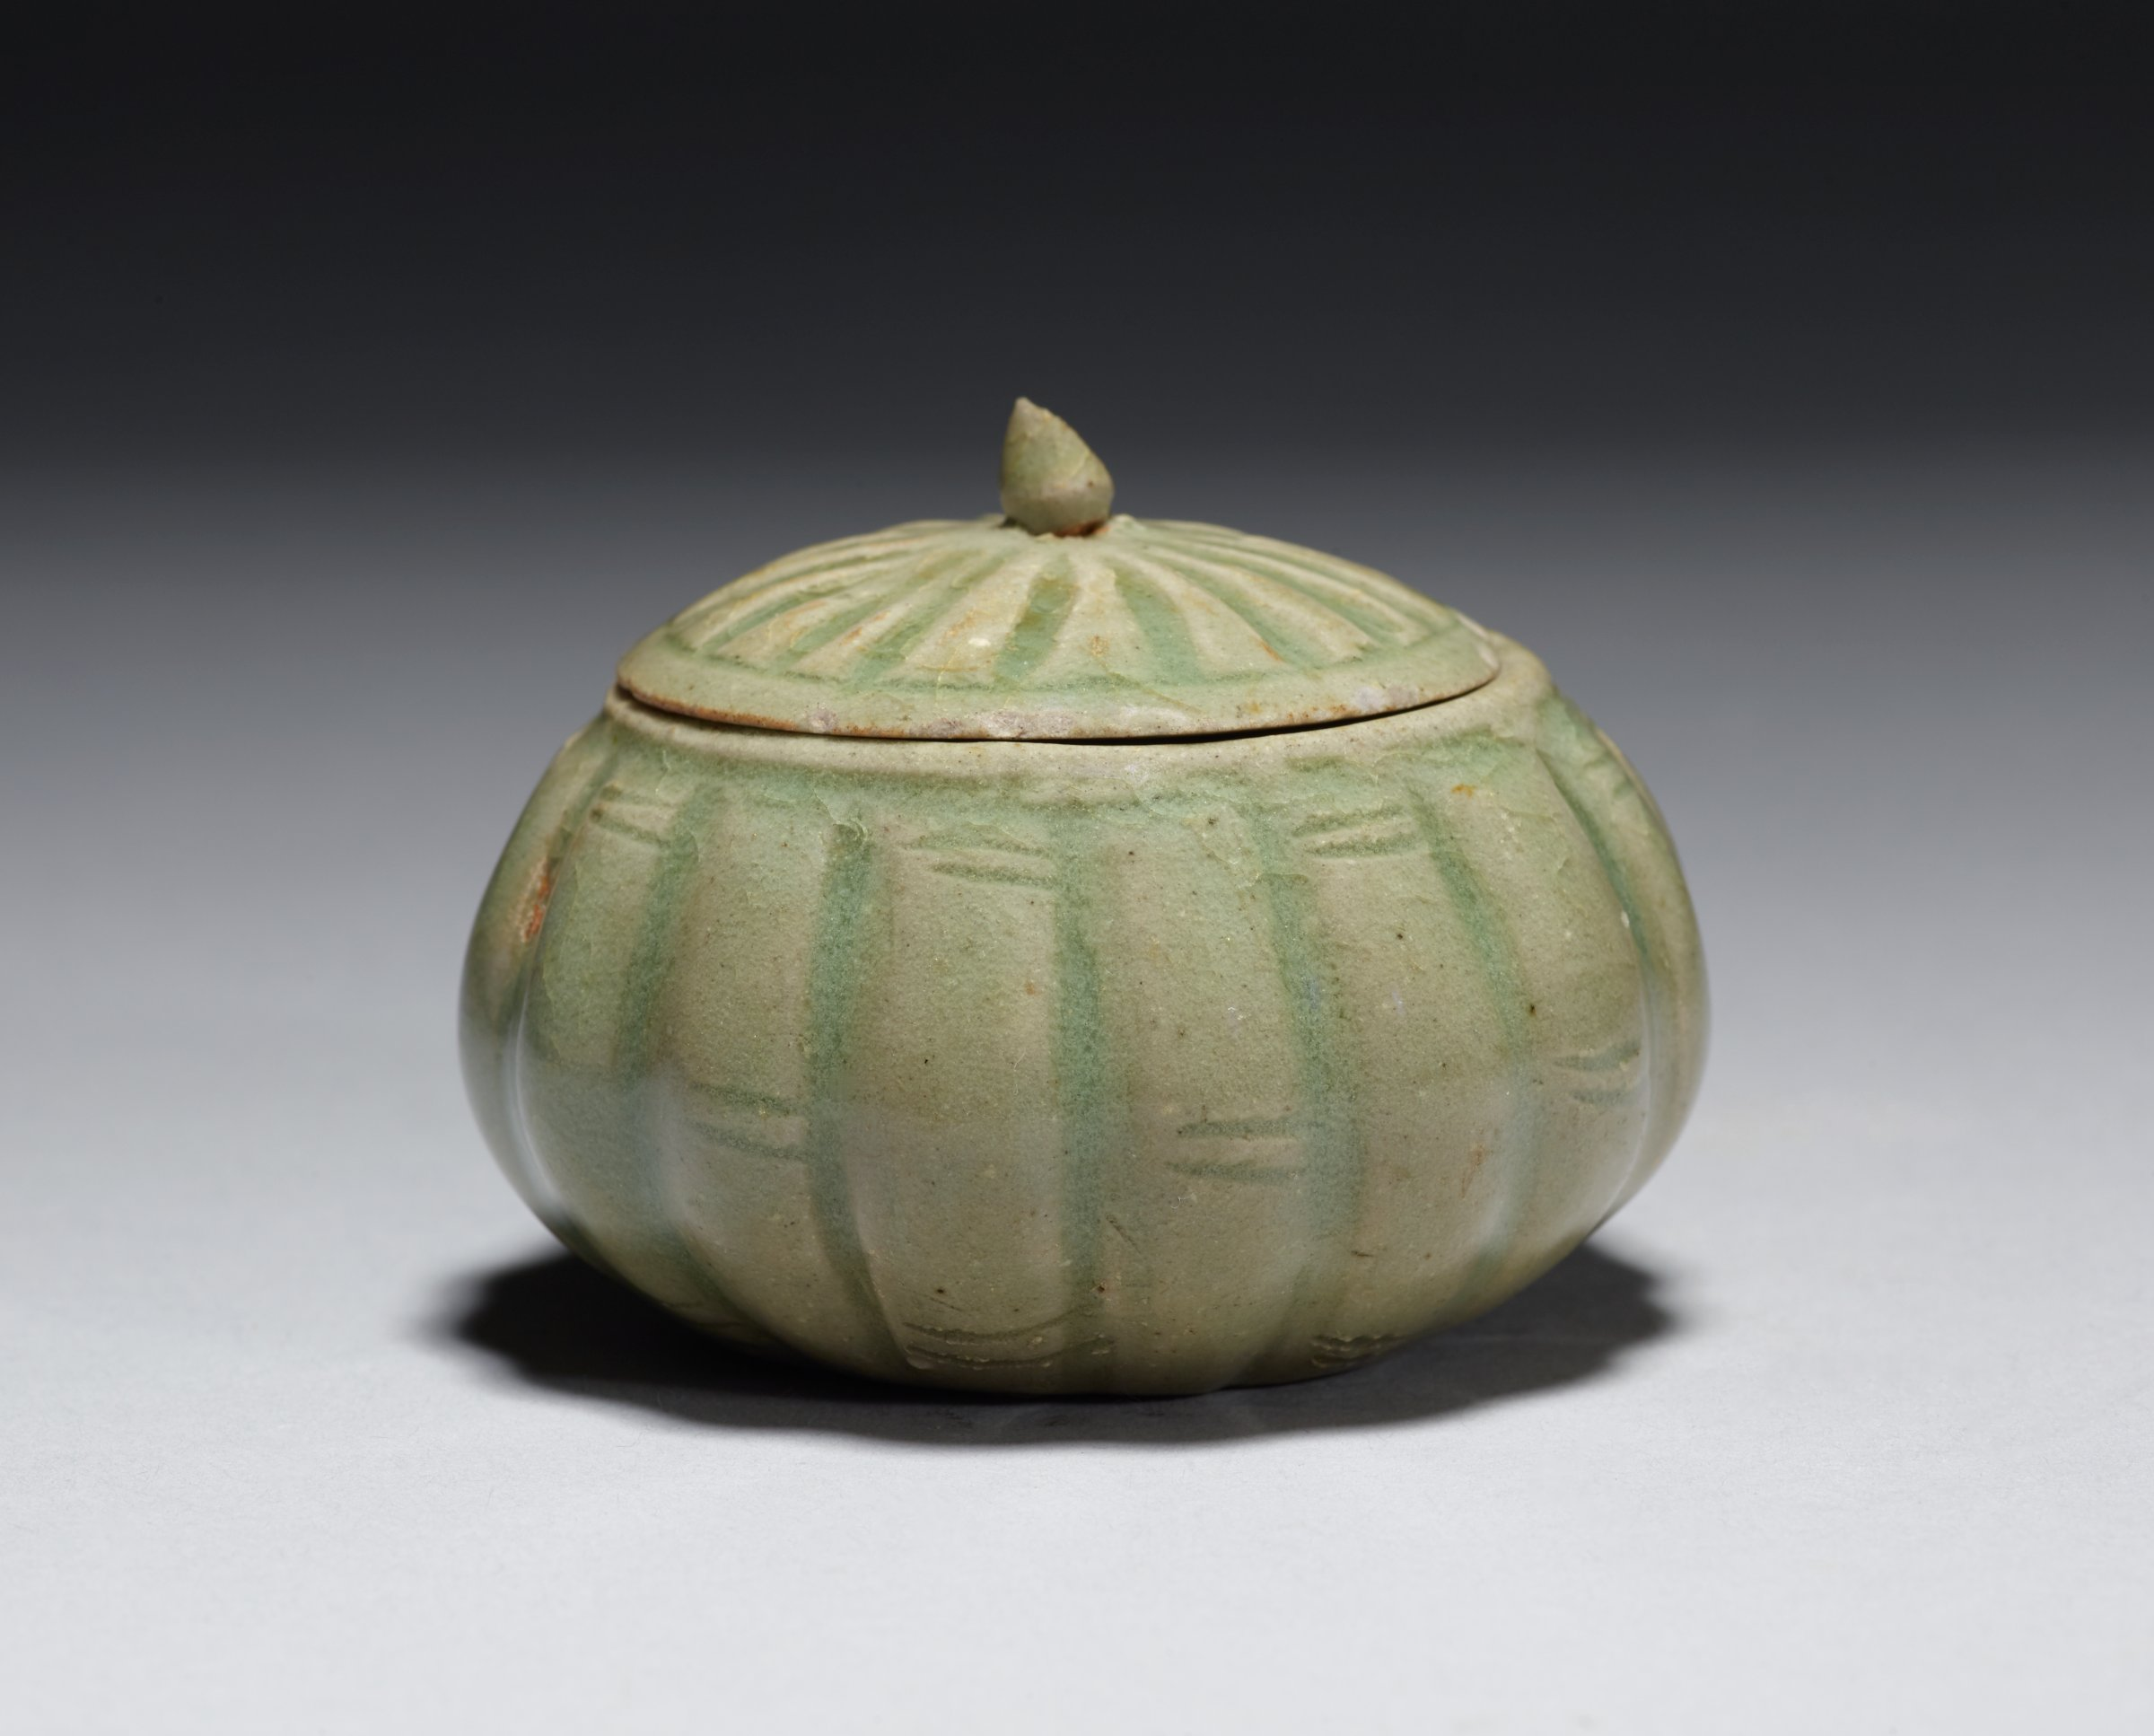 Jar is vertically incised to simulate bamboo or basket work; cover is marked by radiating grooves. Lid is chipped on lip and finial.